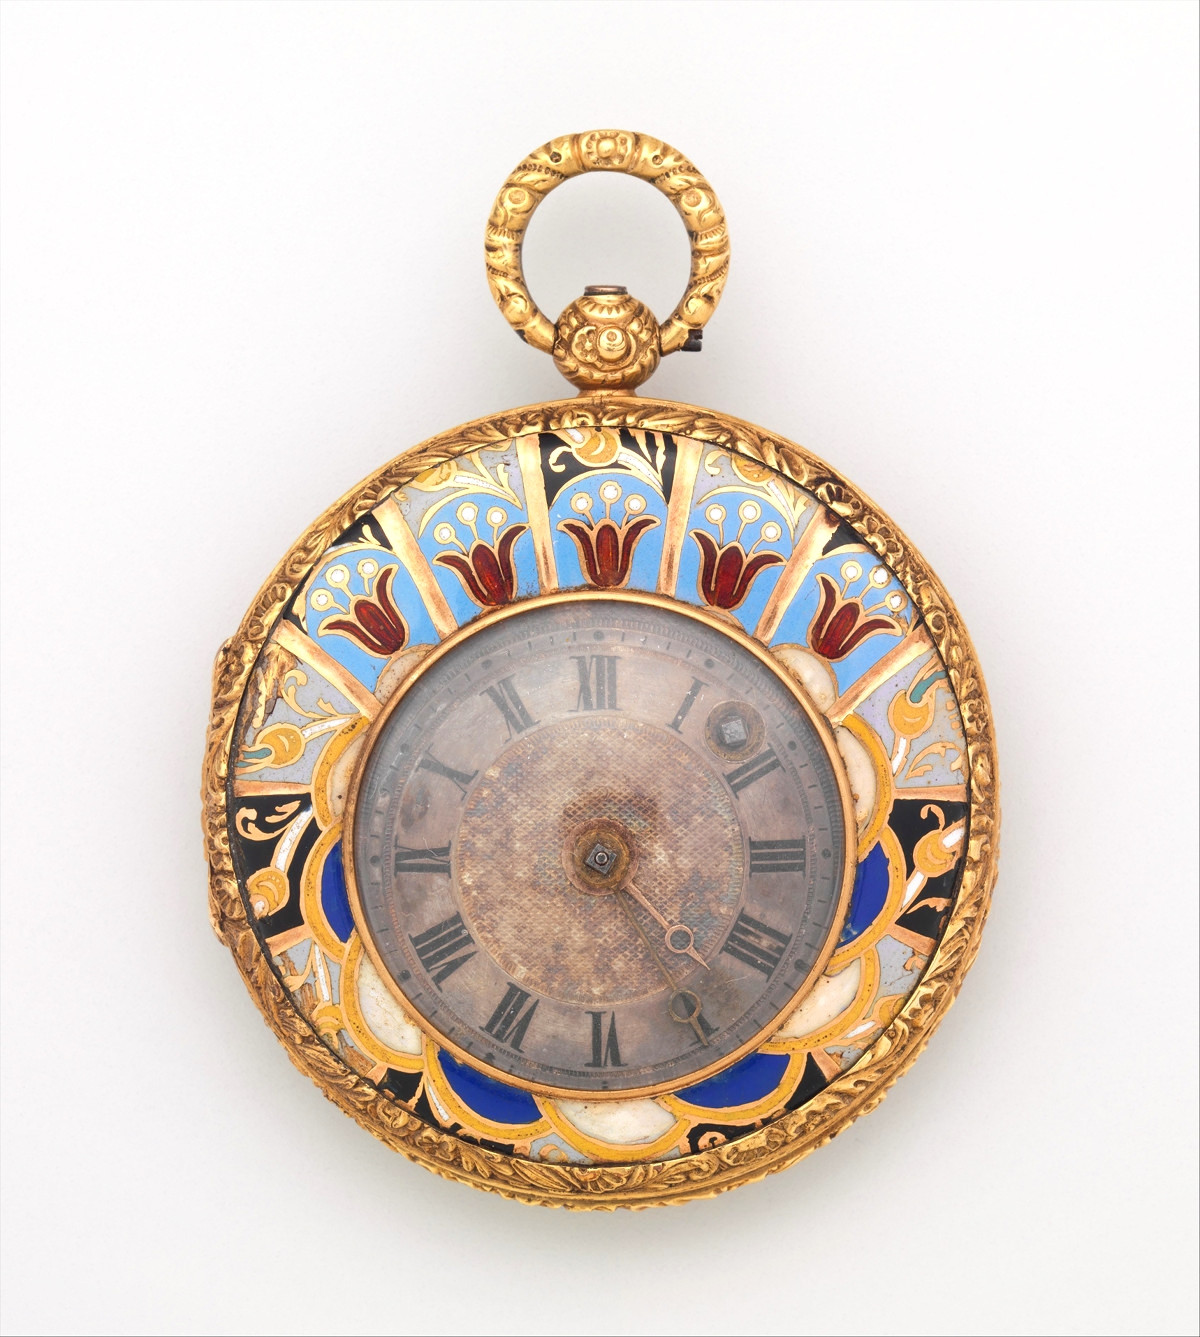 1820. Watch. Swiss, Geneva. Gold, enamel, silver. metmuseum